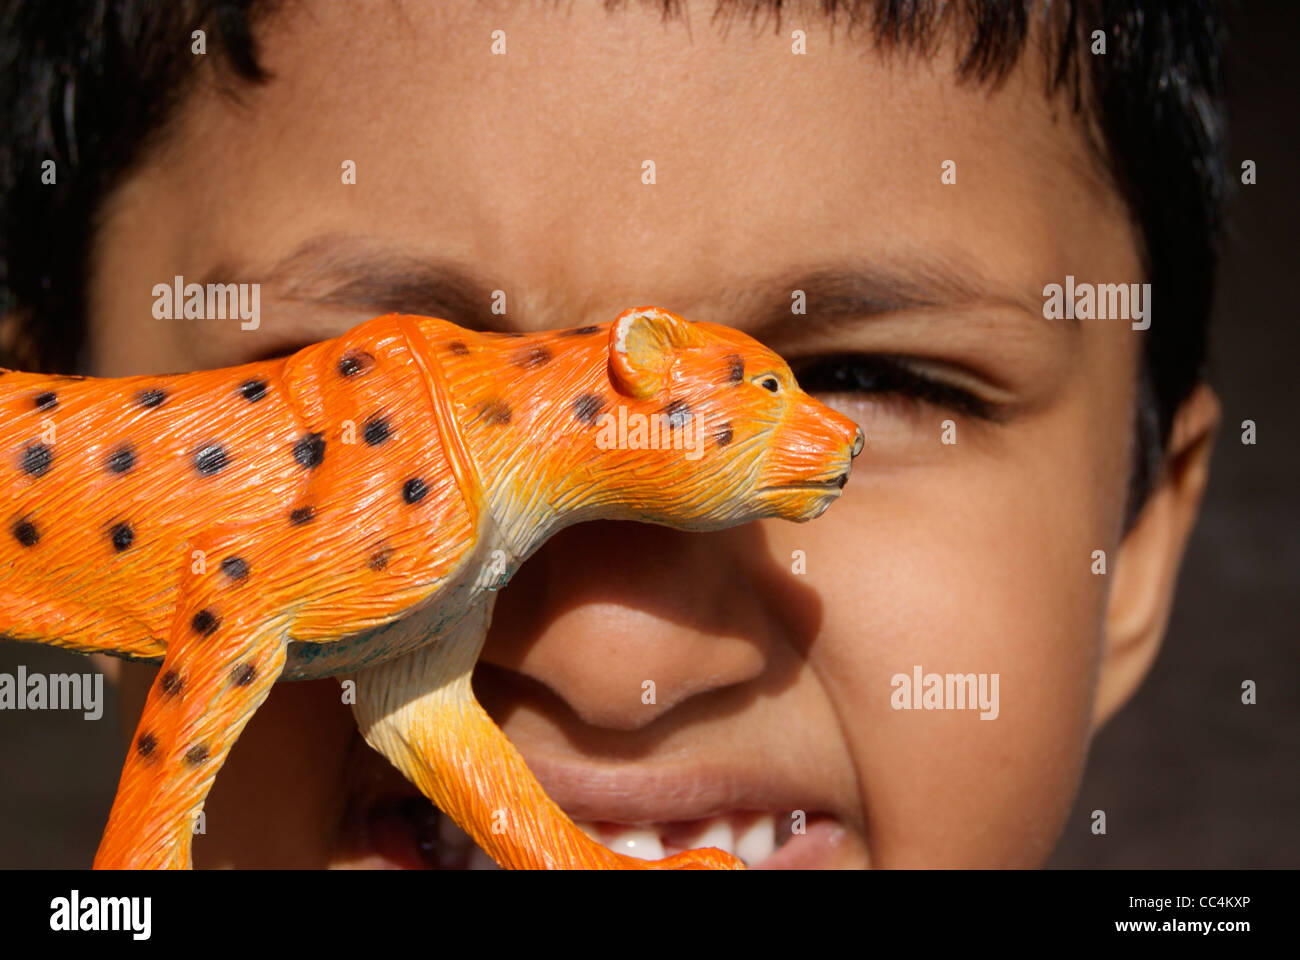 Small boy playing with tiger toy - Stock Image